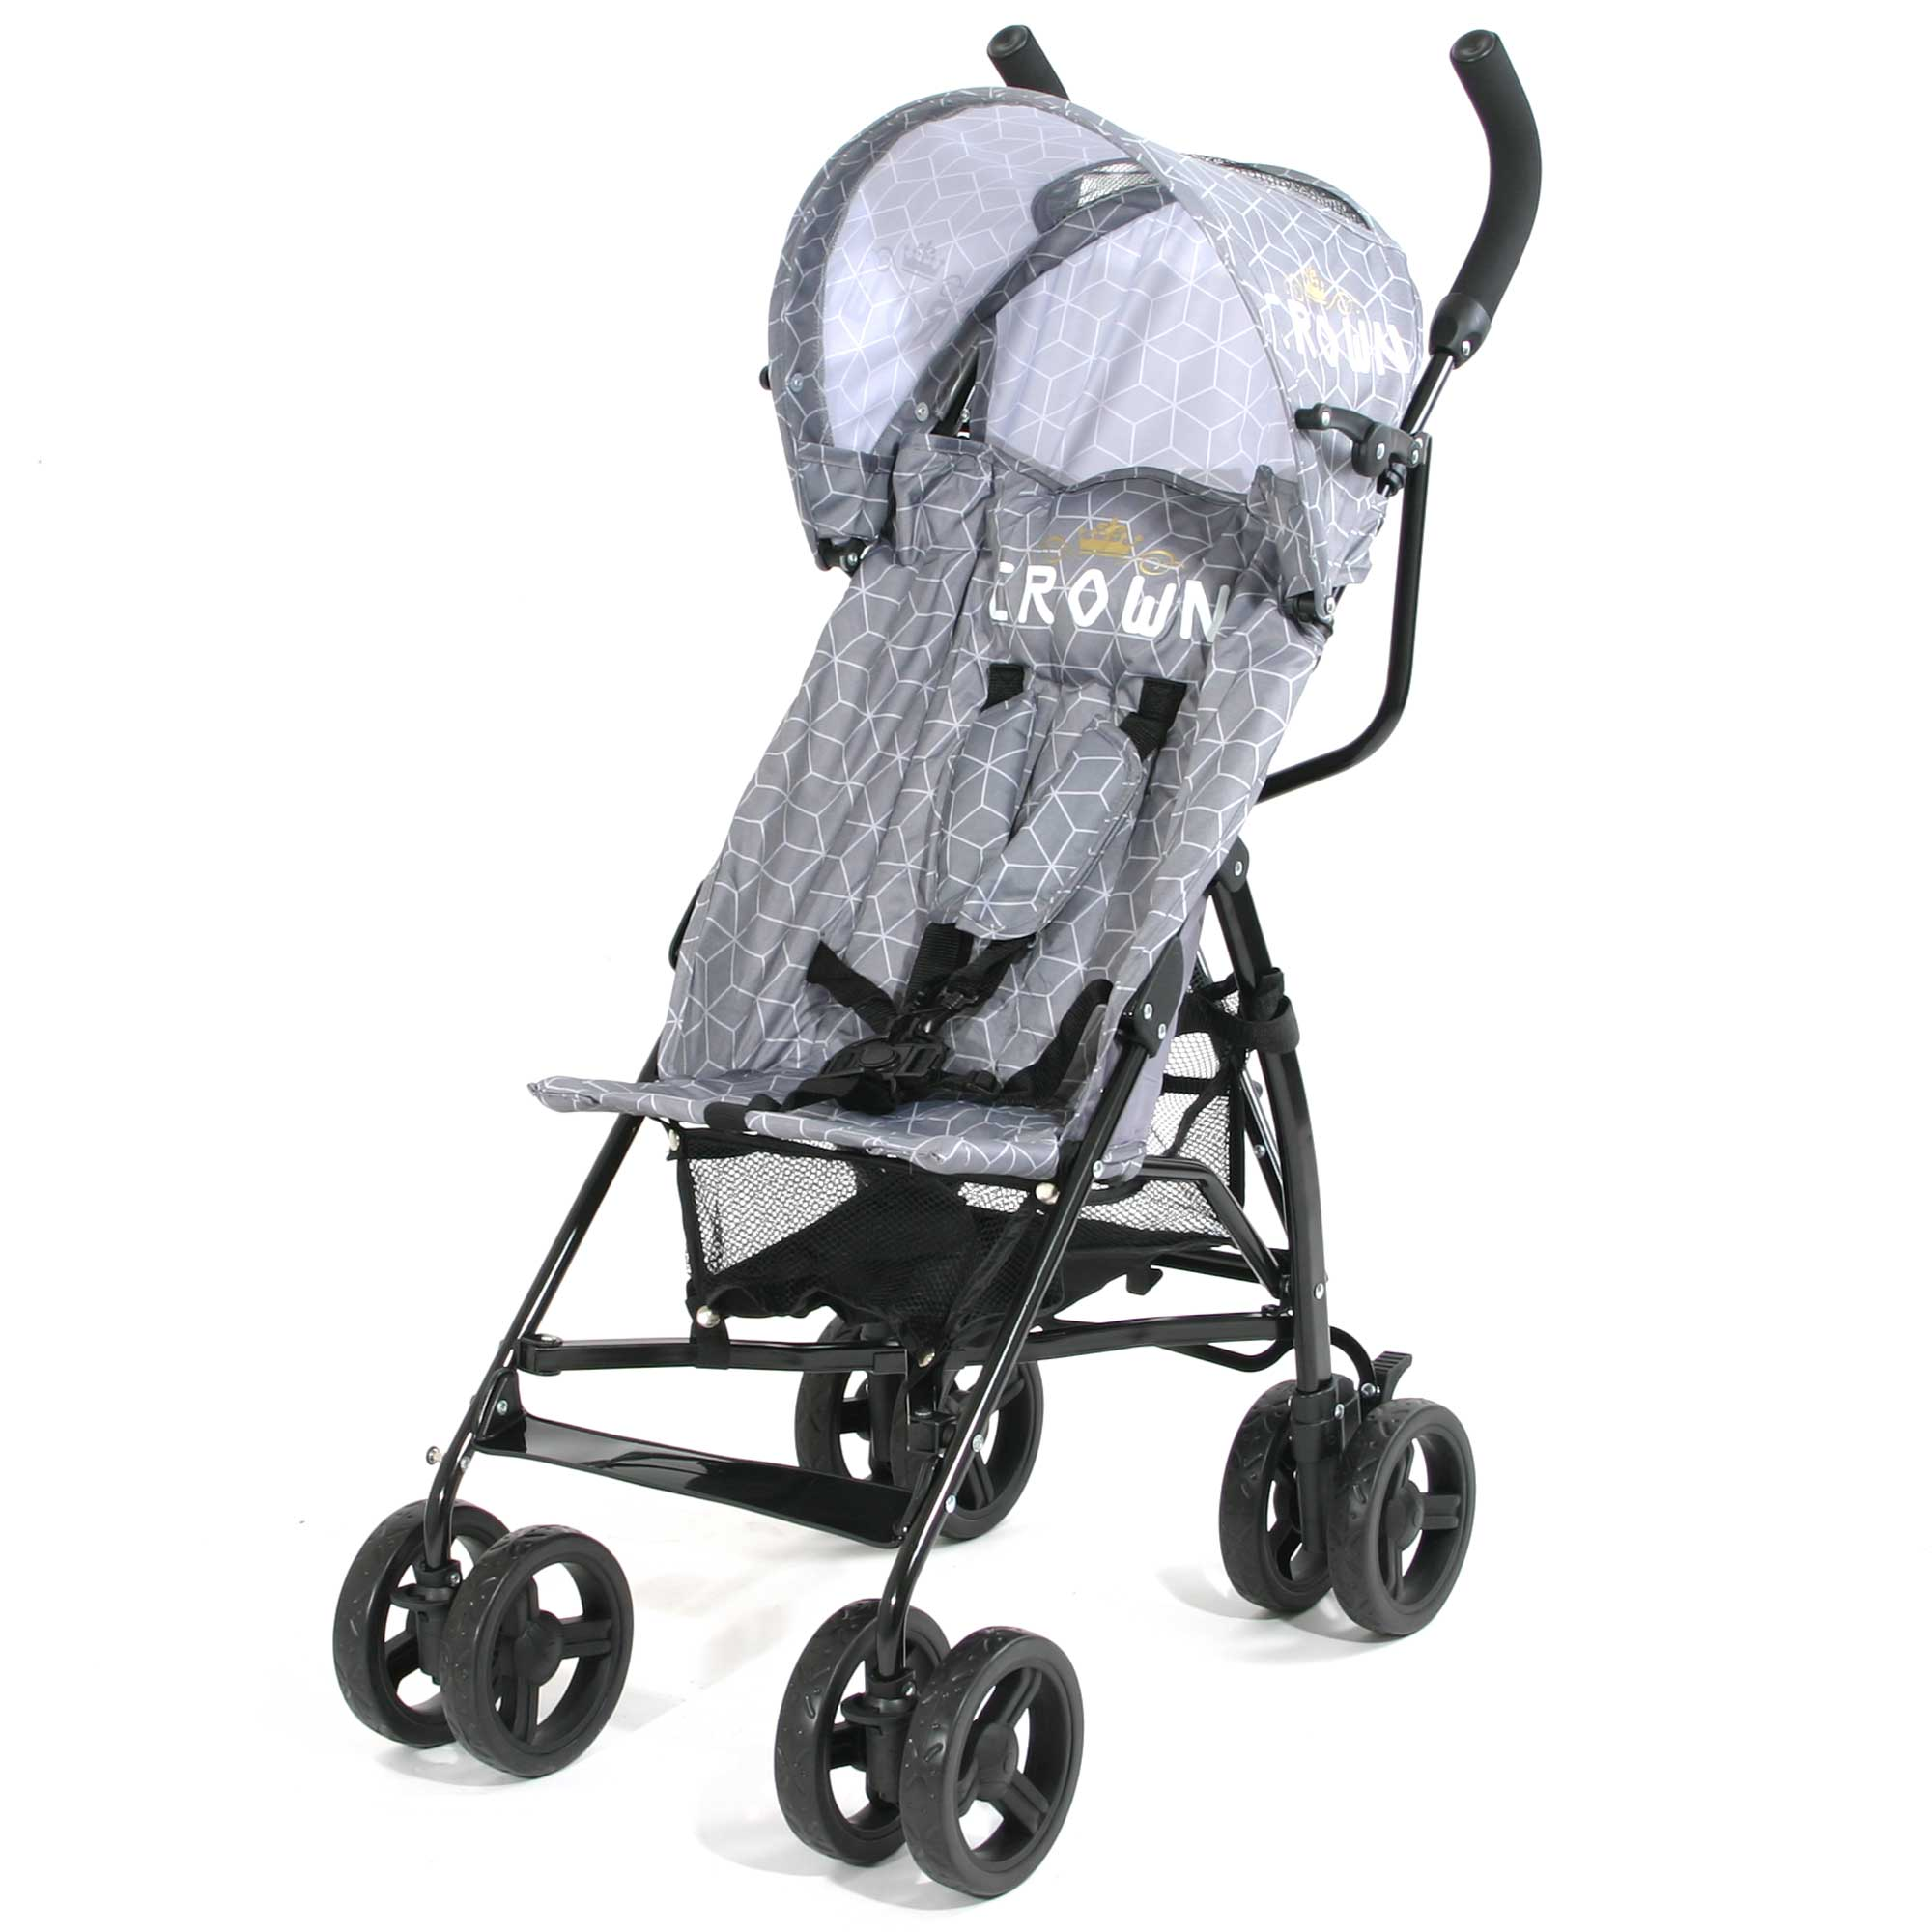 Crown_Kinderwagen_St120_grey_01.jpg